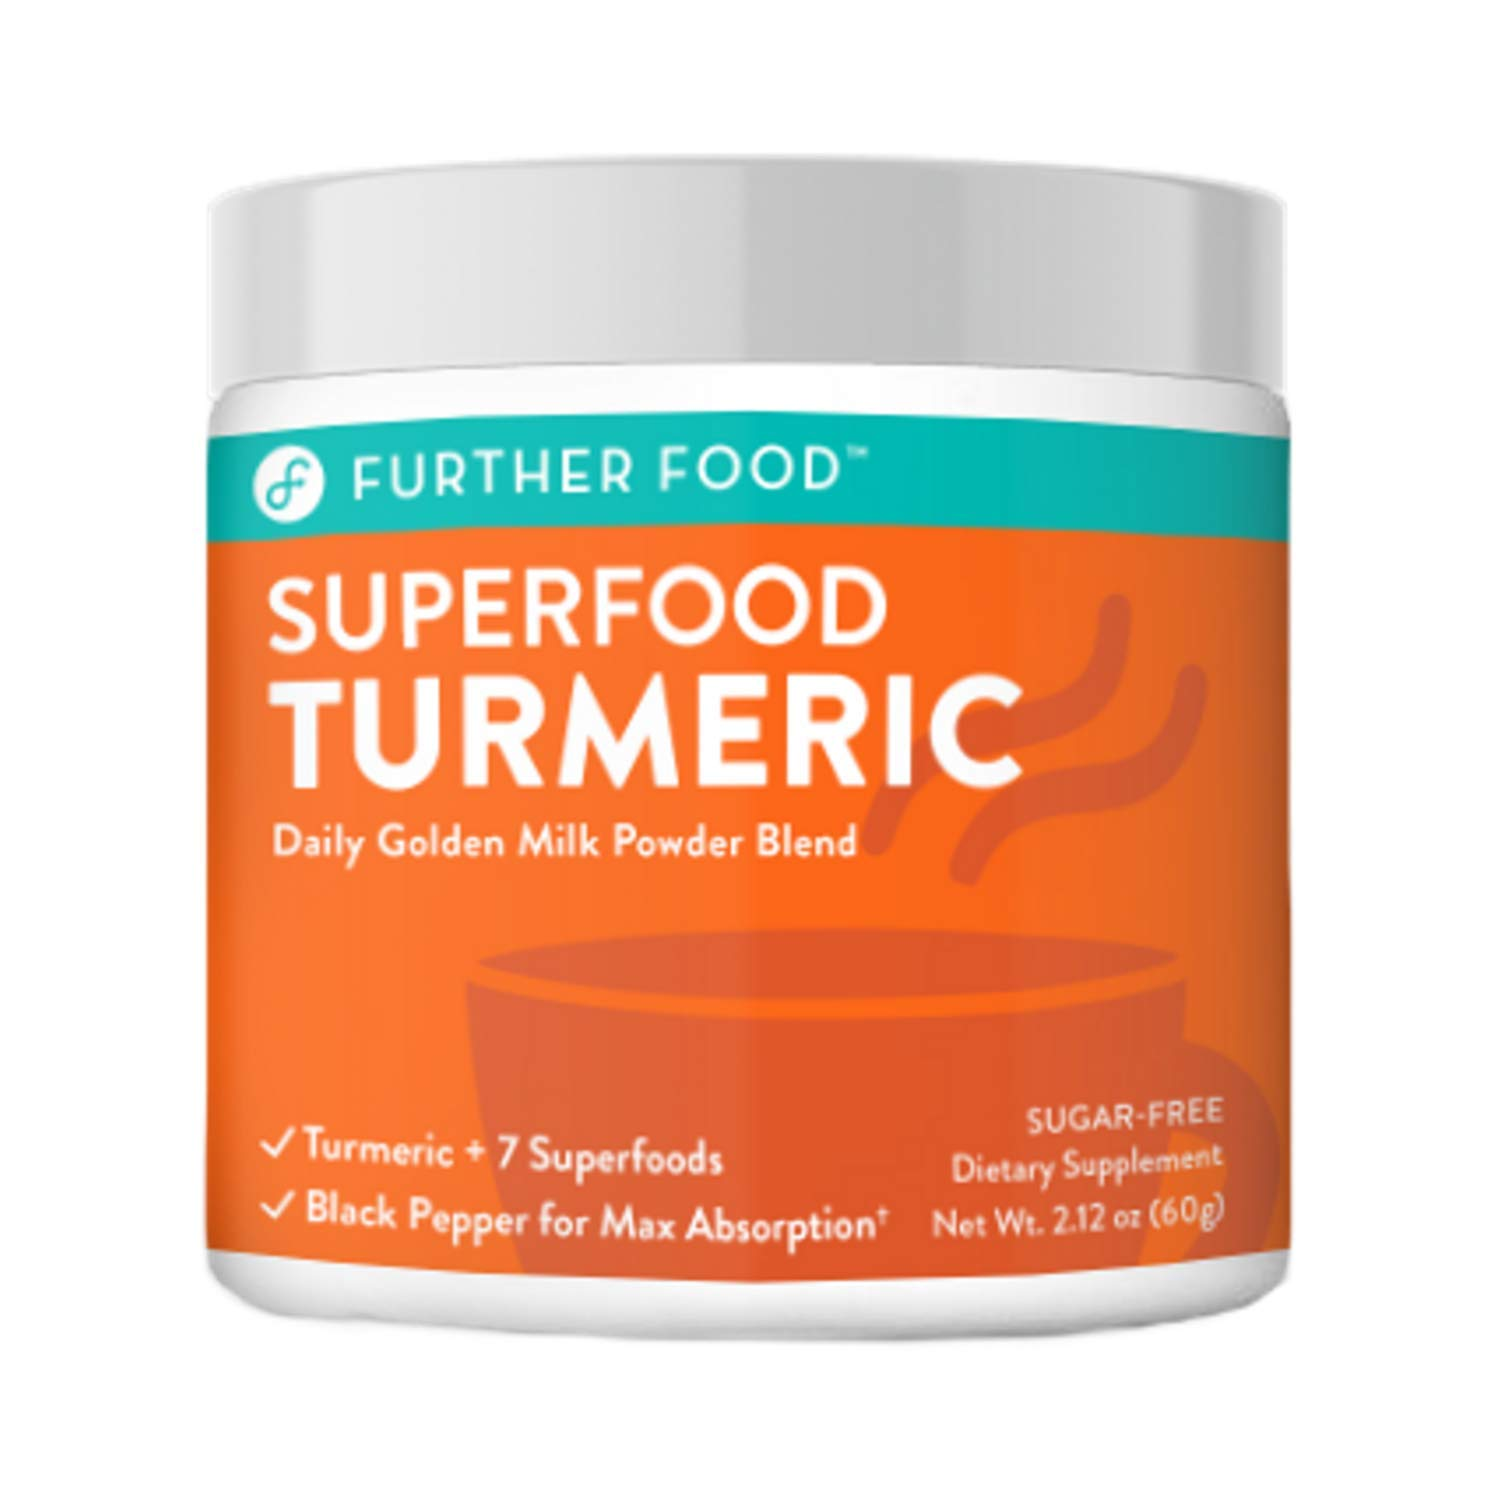 Further Food Superfood Turmeric Golden Milk Powder Boosted with 7 Superfoods Adaptogens Sugar-Free, Non-GMO, Vegan 90 Servings